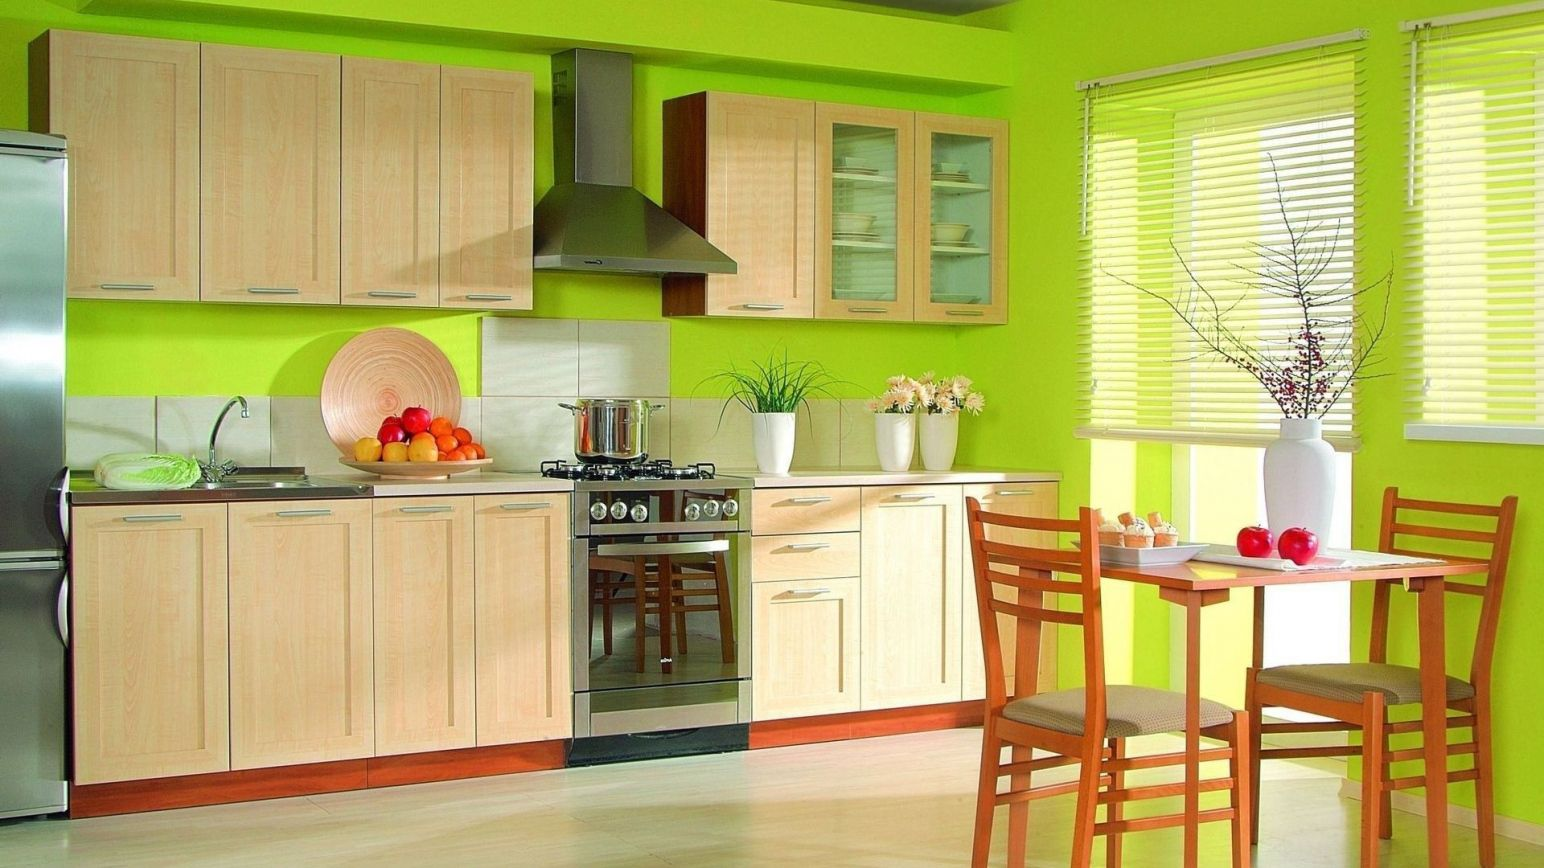 100+ Green Paint Colors for Kitchen Walls - Small Kitchen Remodel ...